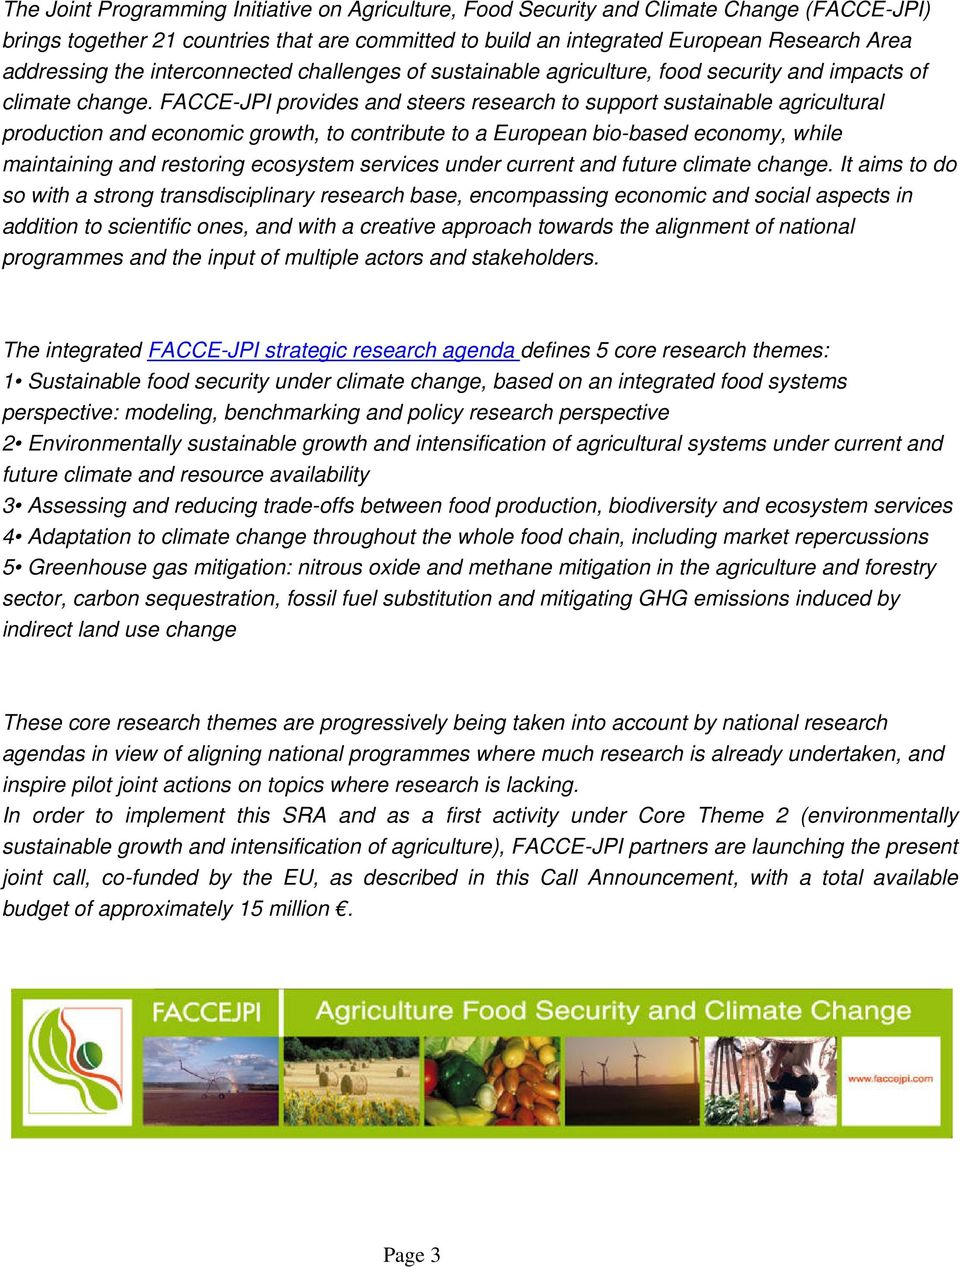 FACCE-JPI provides and steers research to support sustainable agricultural production and economic growth, to contribute to a European bio-based economy, while maintaining and restoring ecosystem